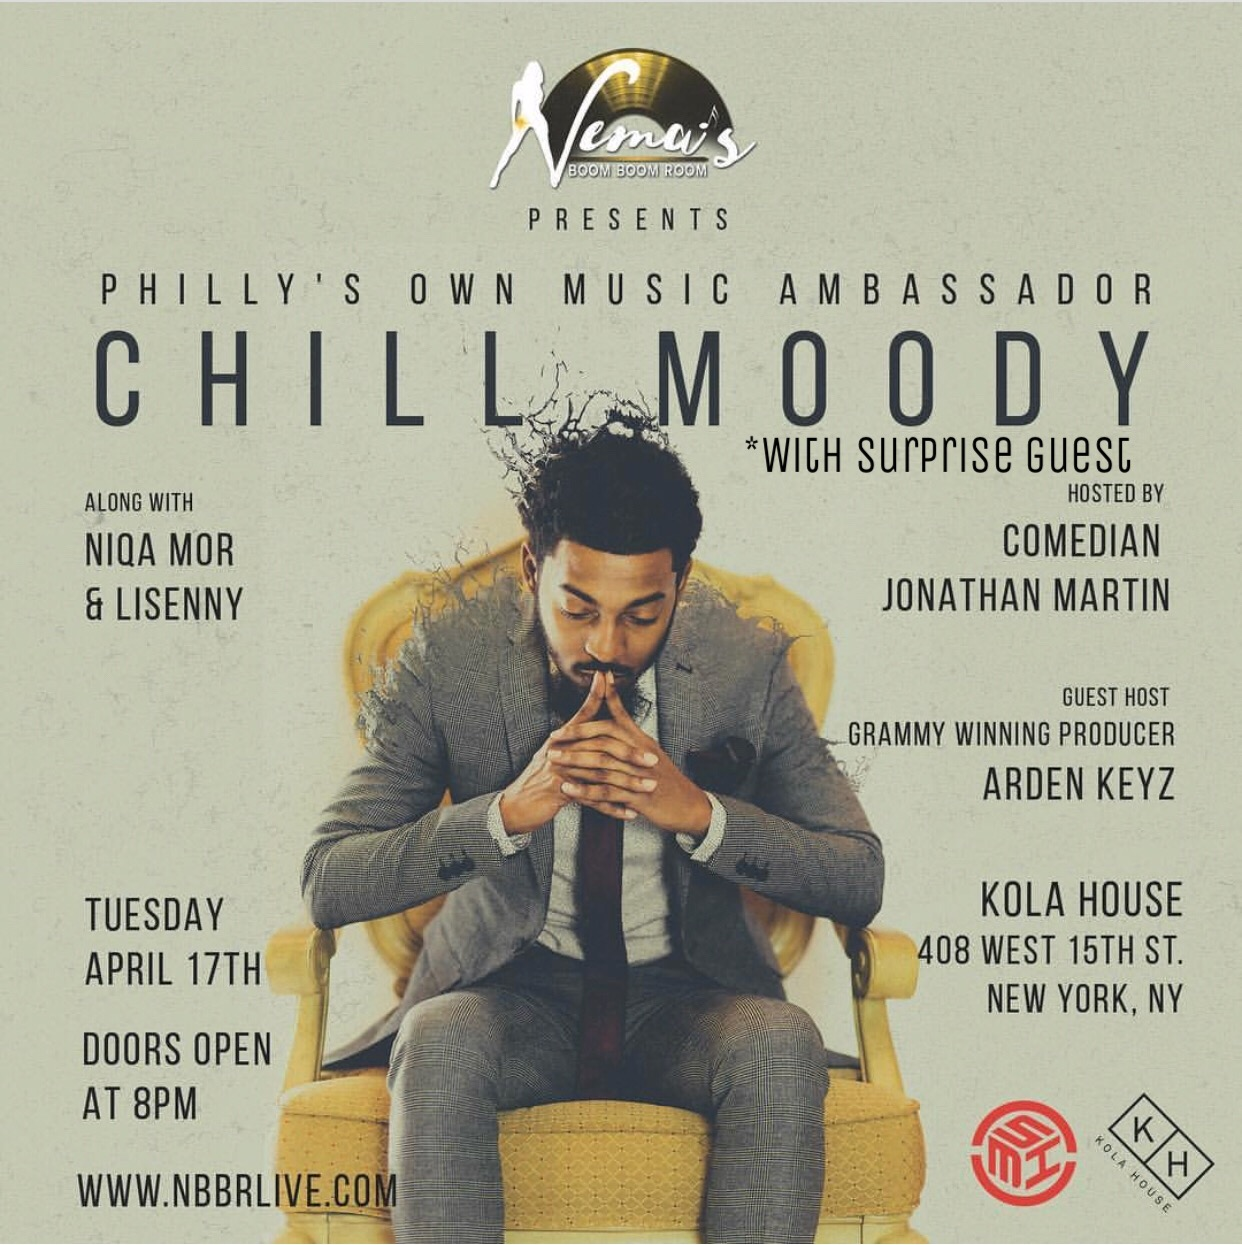 Chill Moody w/ Surprise GuestTuesday April 17th 2018KOLA House408 W. 15th StreetNew York, NY -